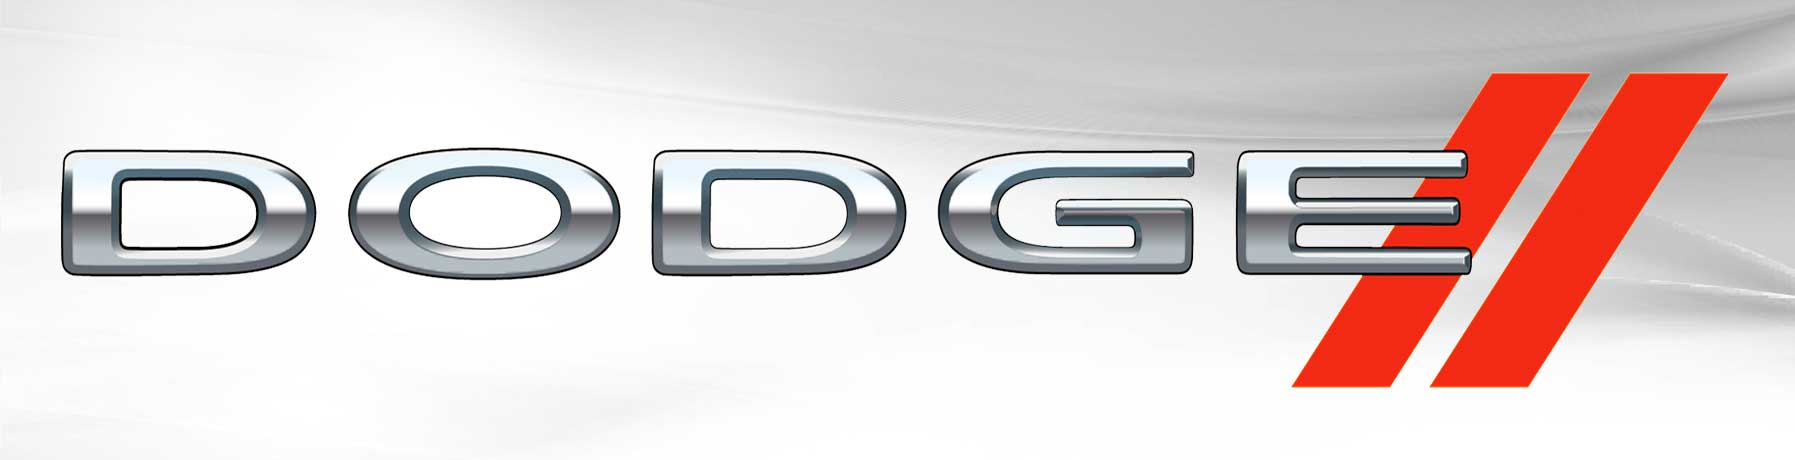 we service dodge vehicles